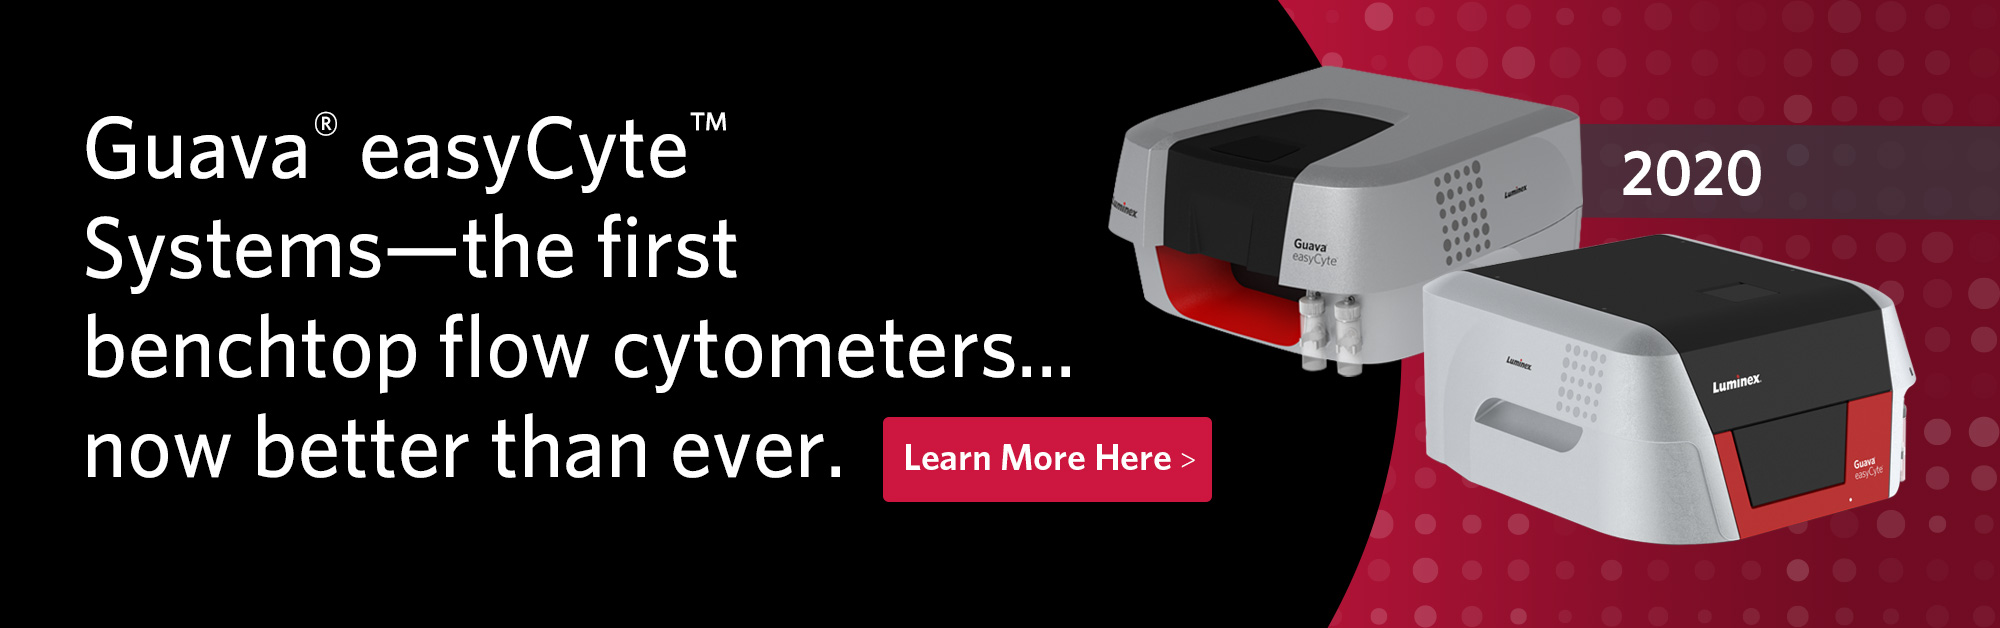 Guava® easyCyte™ Systems–the first benchtop flow cytometers... now better than ever! Learn More